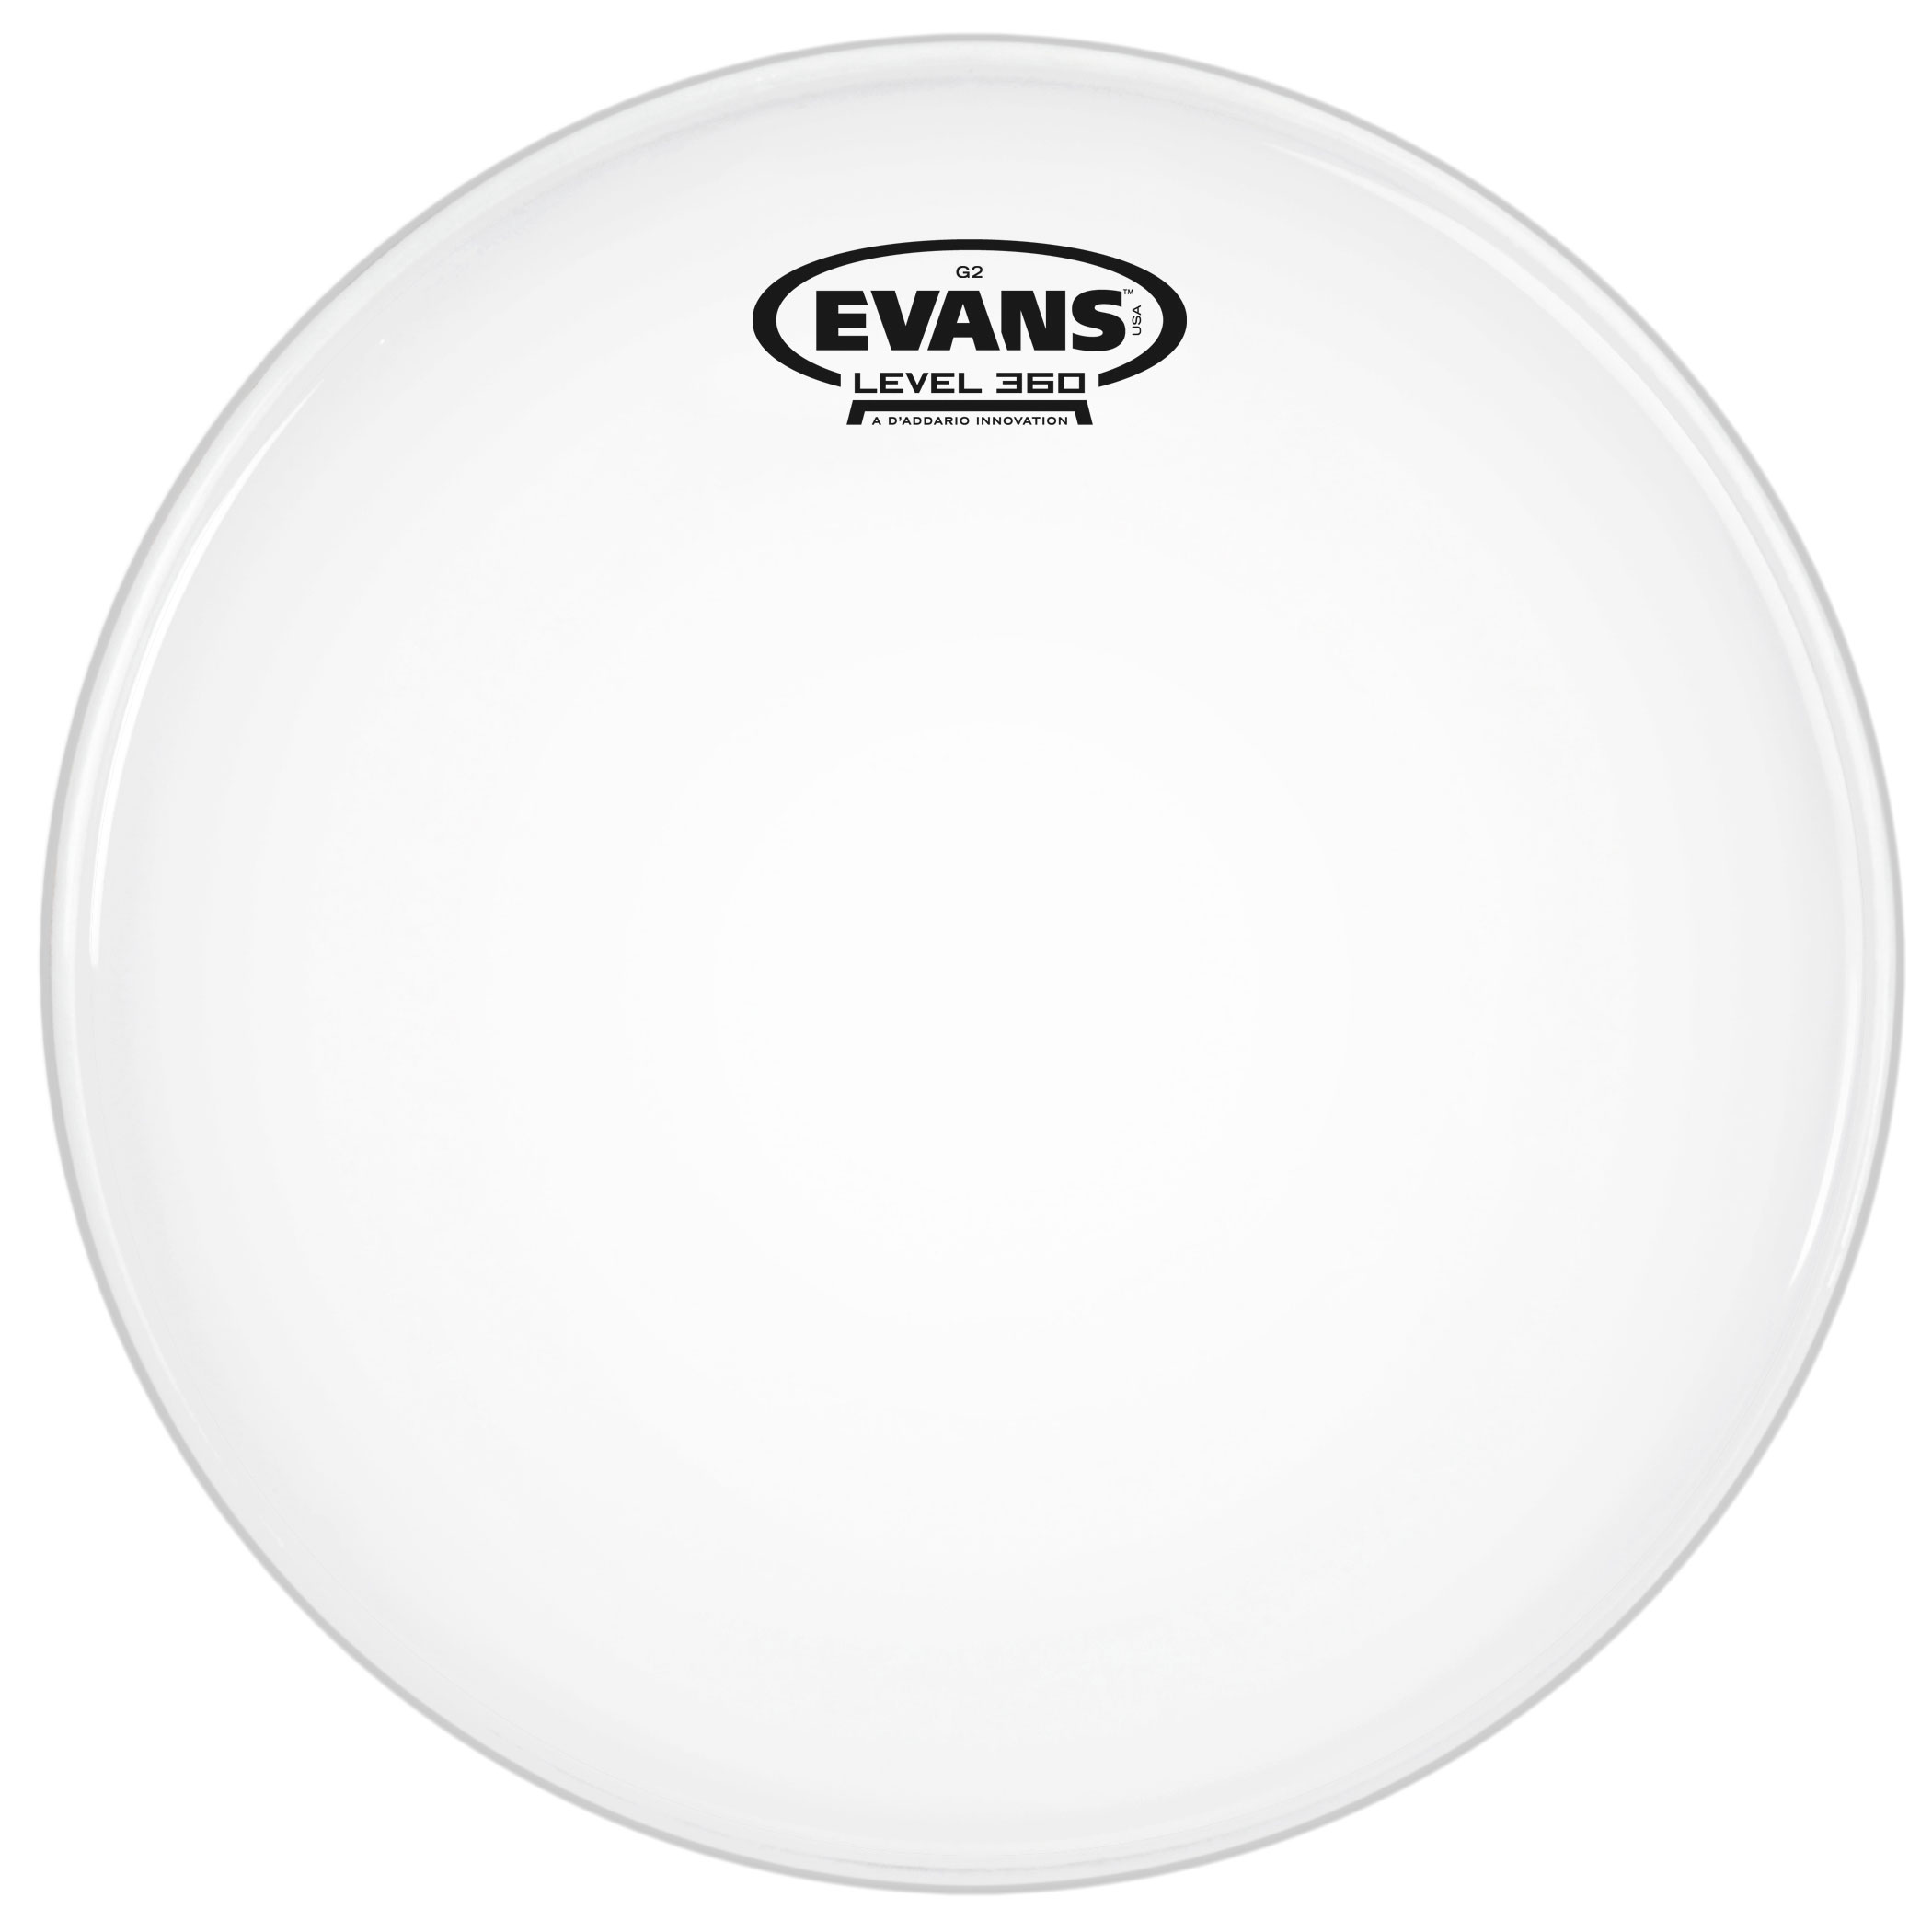 "Evans 6"" G2 Coated Head"